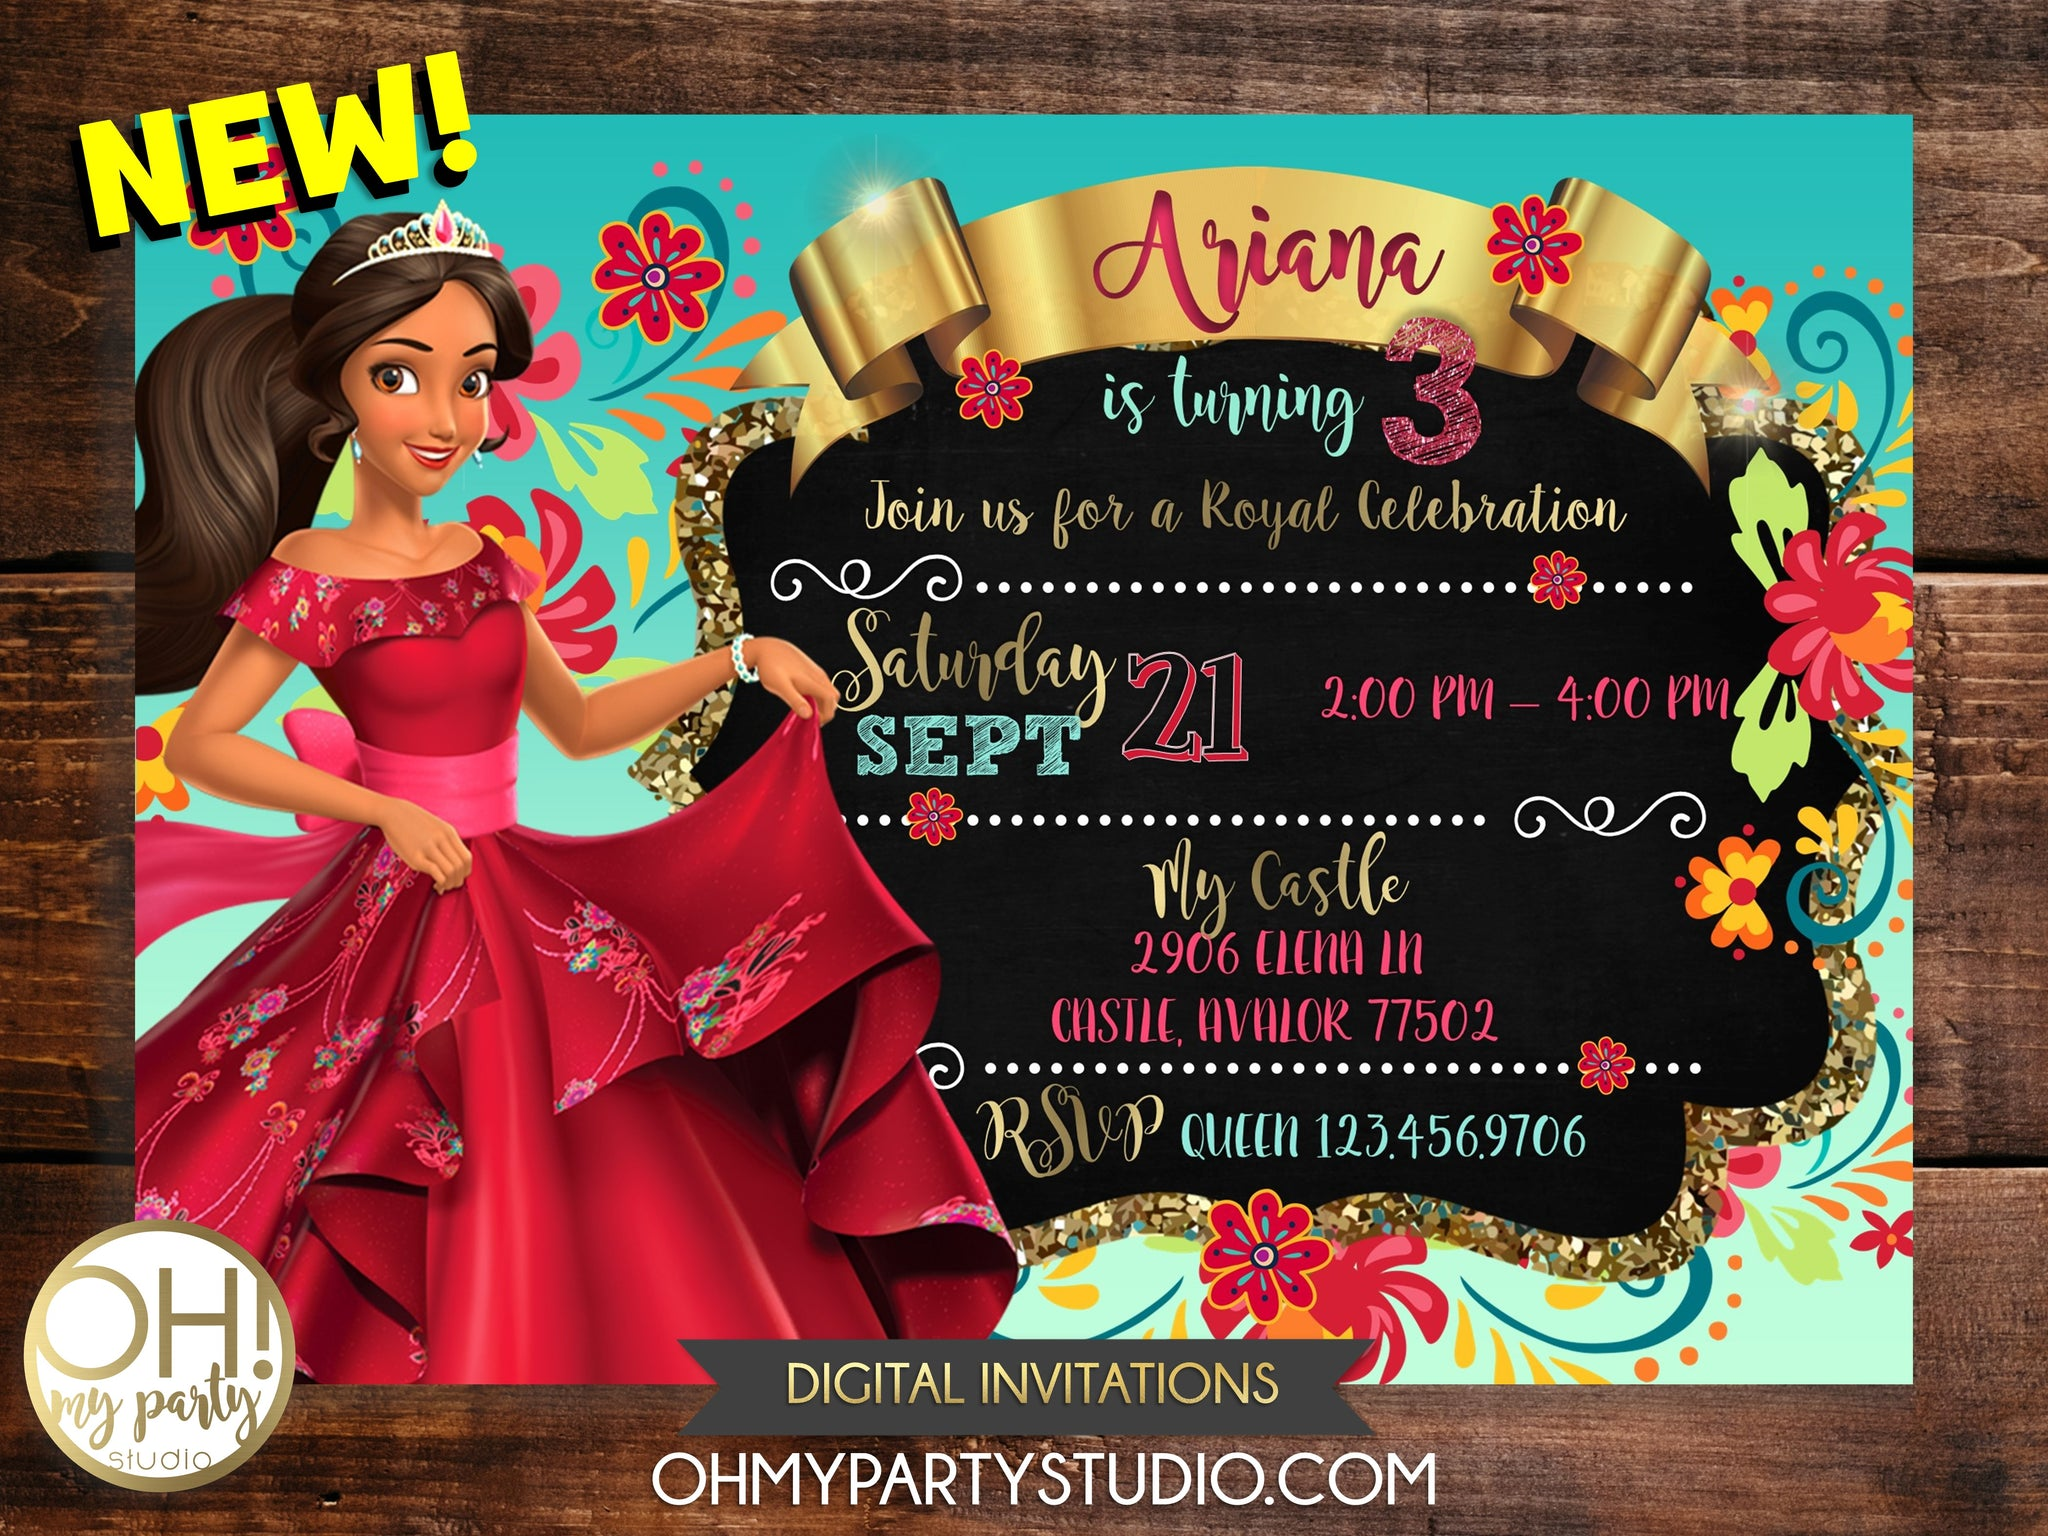 ELENA OF AVALOR BIRTHDAY PARTY, ELENA OF AVALOR INVITATIONS,ELENA OF AVALOR INVITATION, ELENA OF AVALOR BIRTHDAY INVITATIONS, ELENA OF AVALOR INVITATION DIGITAL, ELENA OF AVALOR PARTY THEME, ELENA OF AVALOR PARTY IDEAS